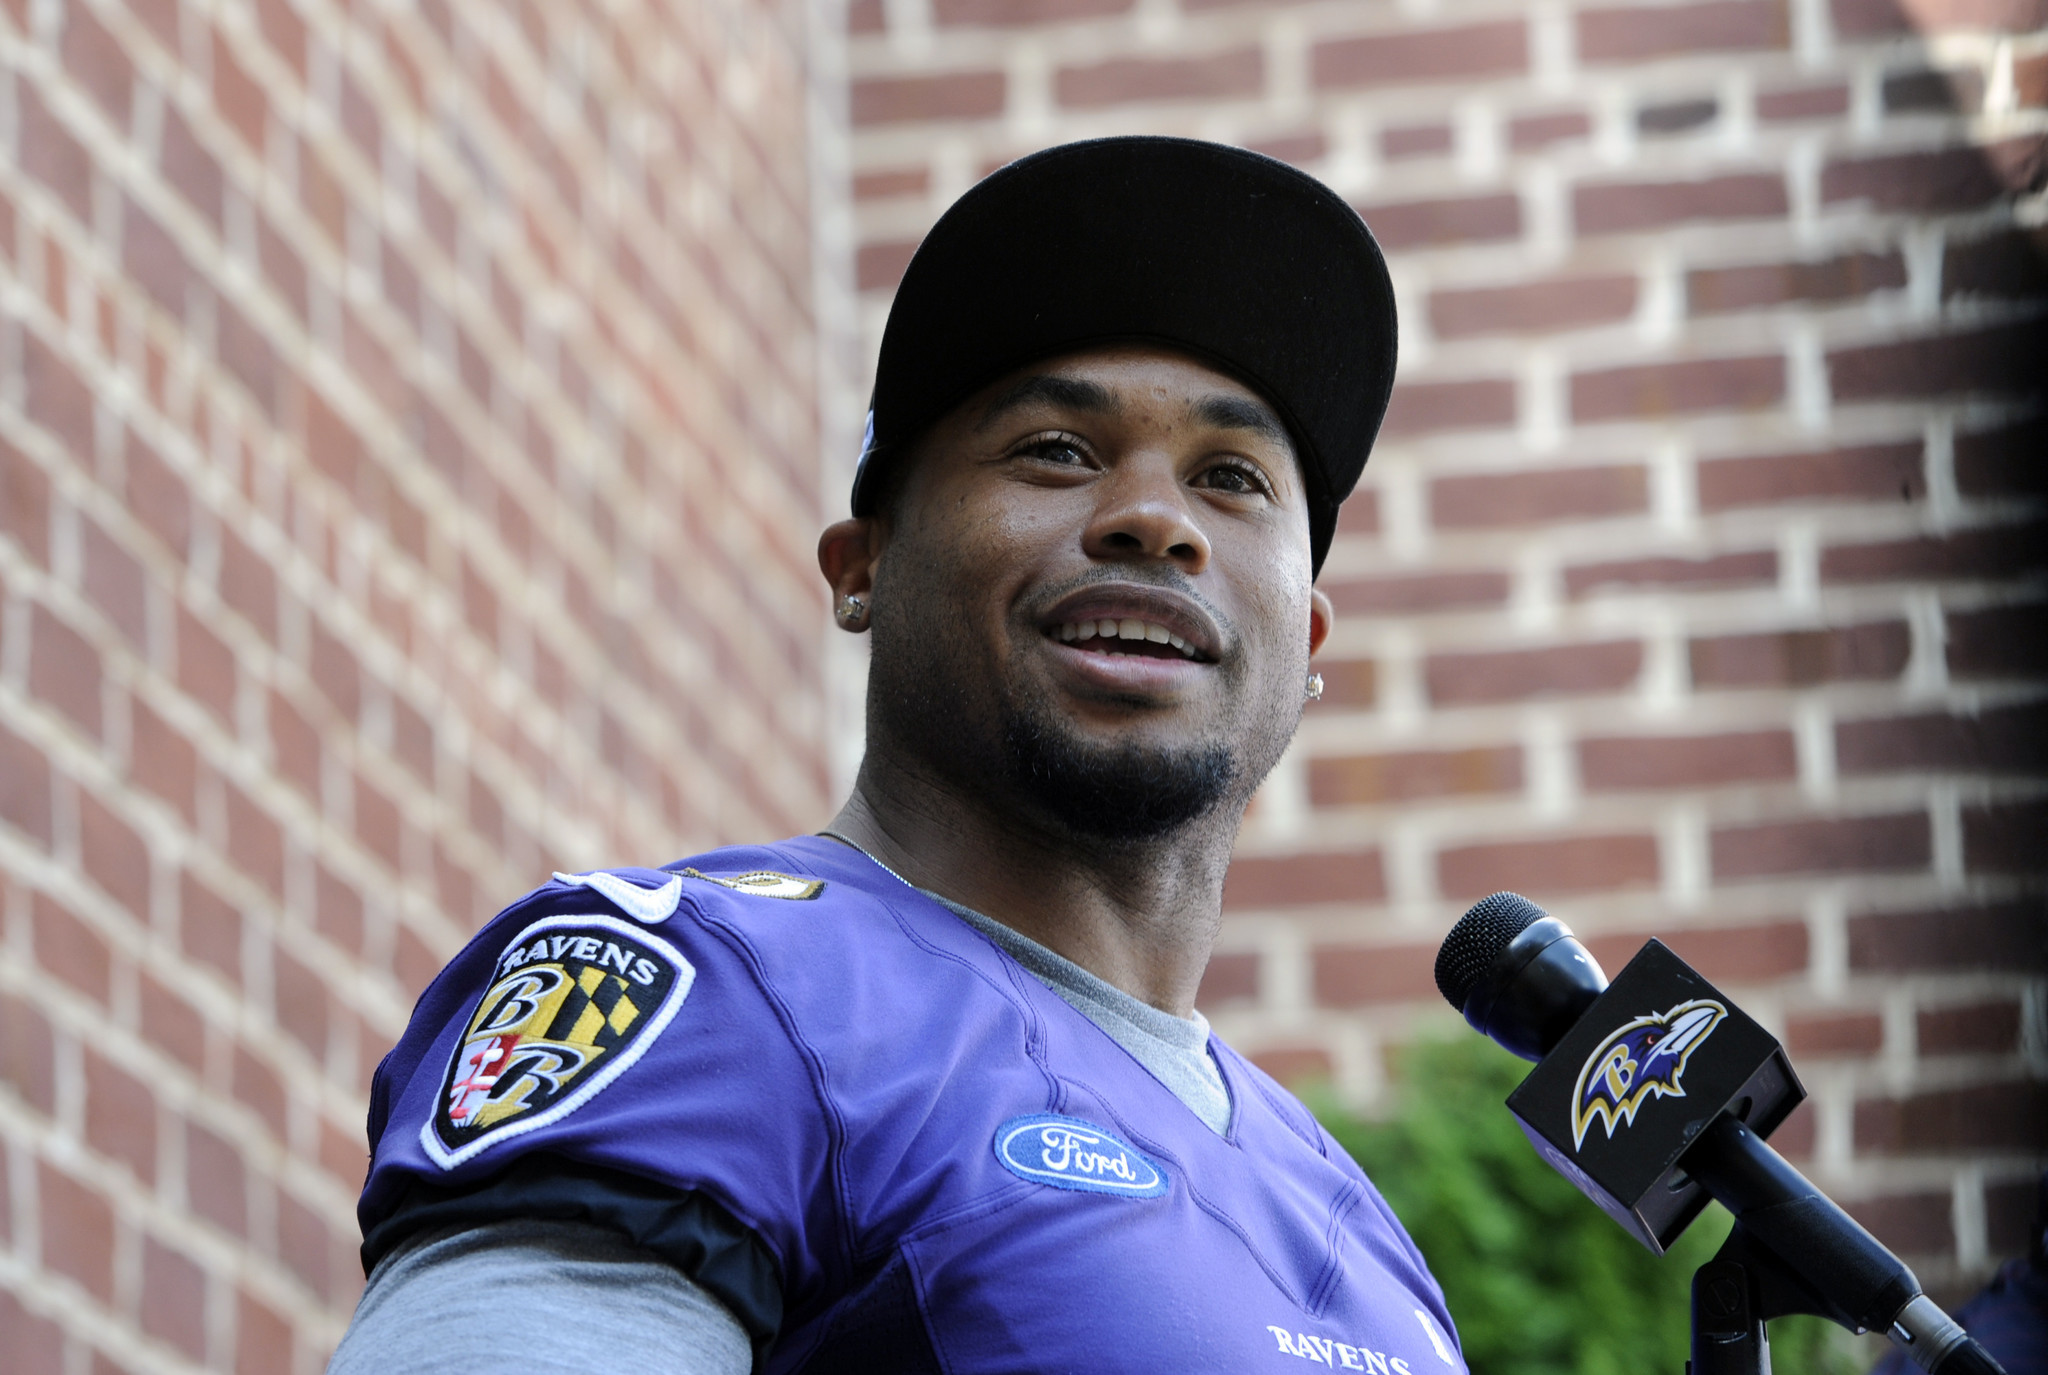 Steve Smith Sr returns to Ravens and speaks passionately about